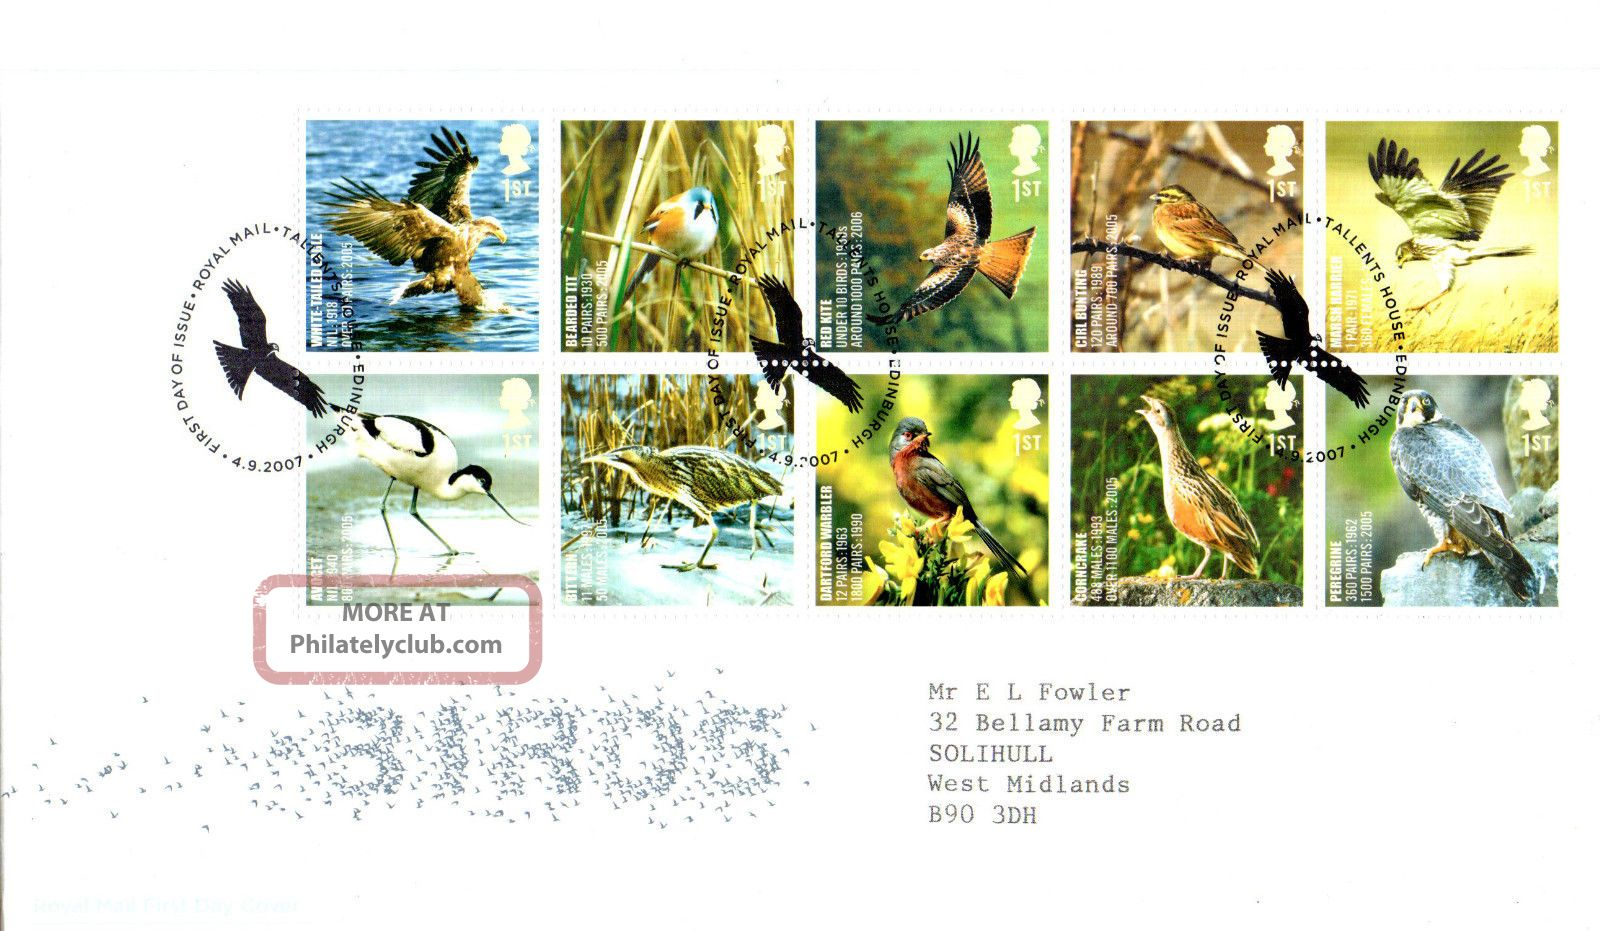 4 September 2007 Uk Species In Recovery Birds Rm First Day Cover Bureau Shs Animal Kingdom photo